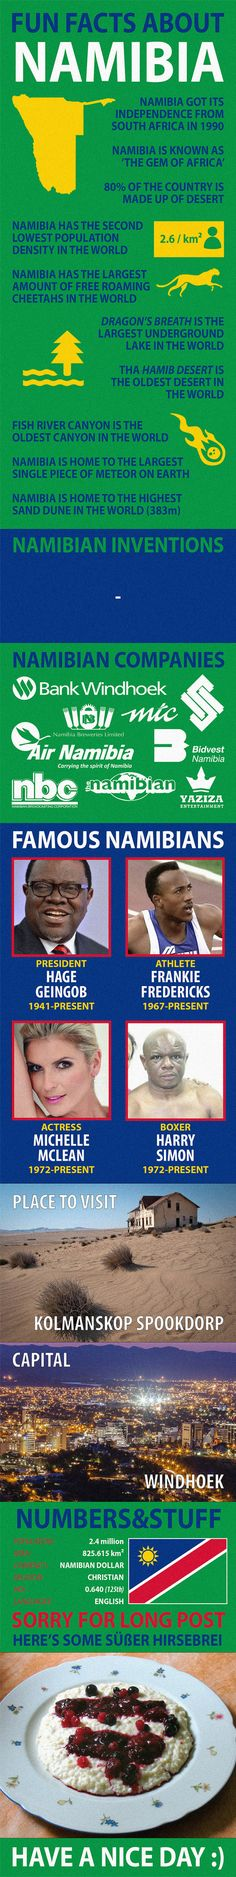 Fun Facts about Namibia